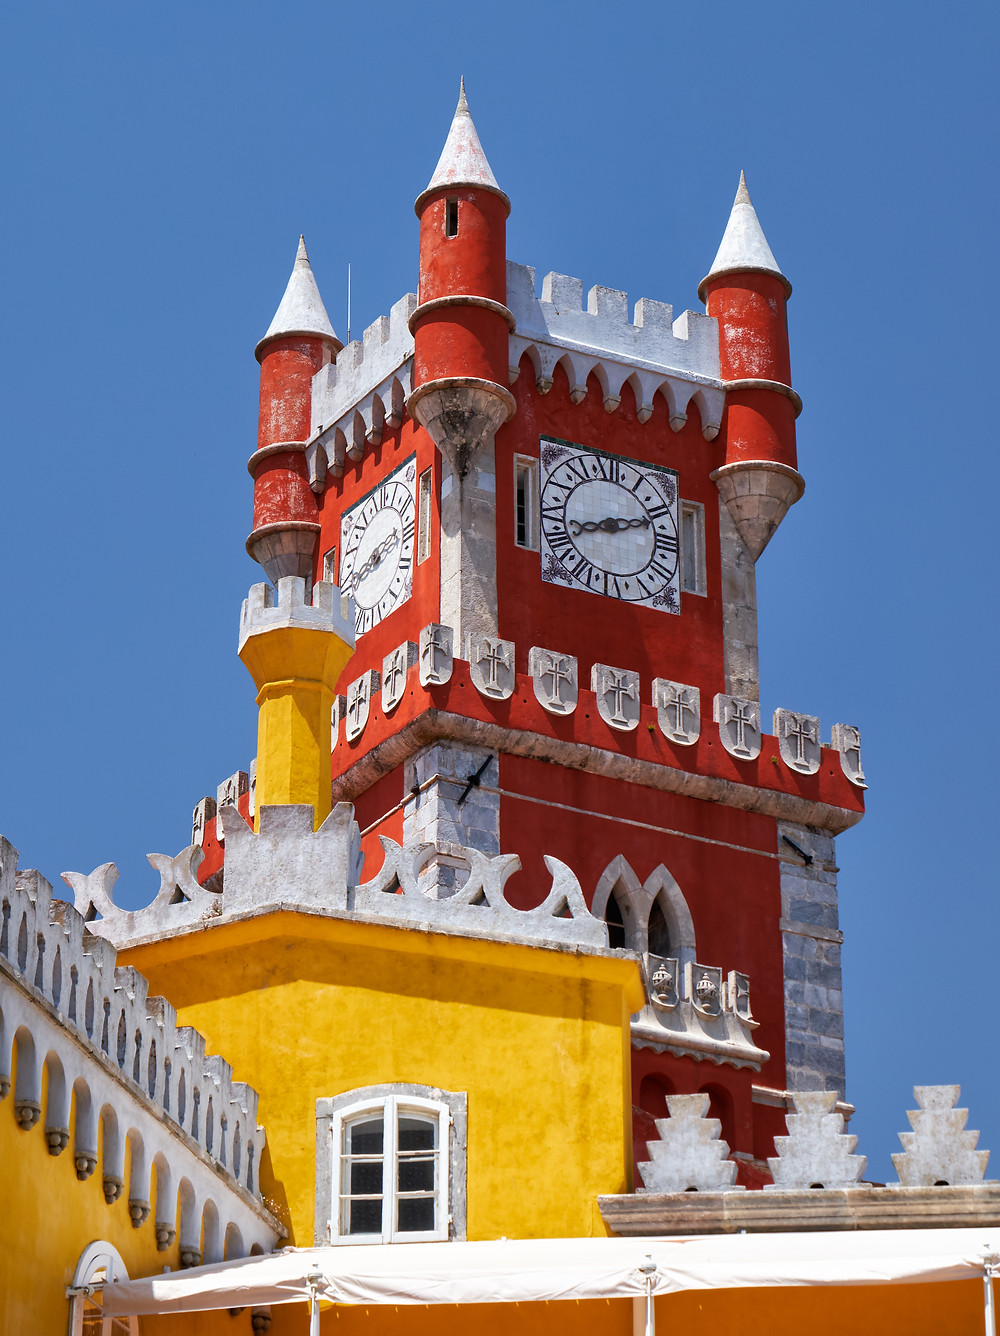 the view of the Clock tower with the turrets and battlements at  Pena Palace